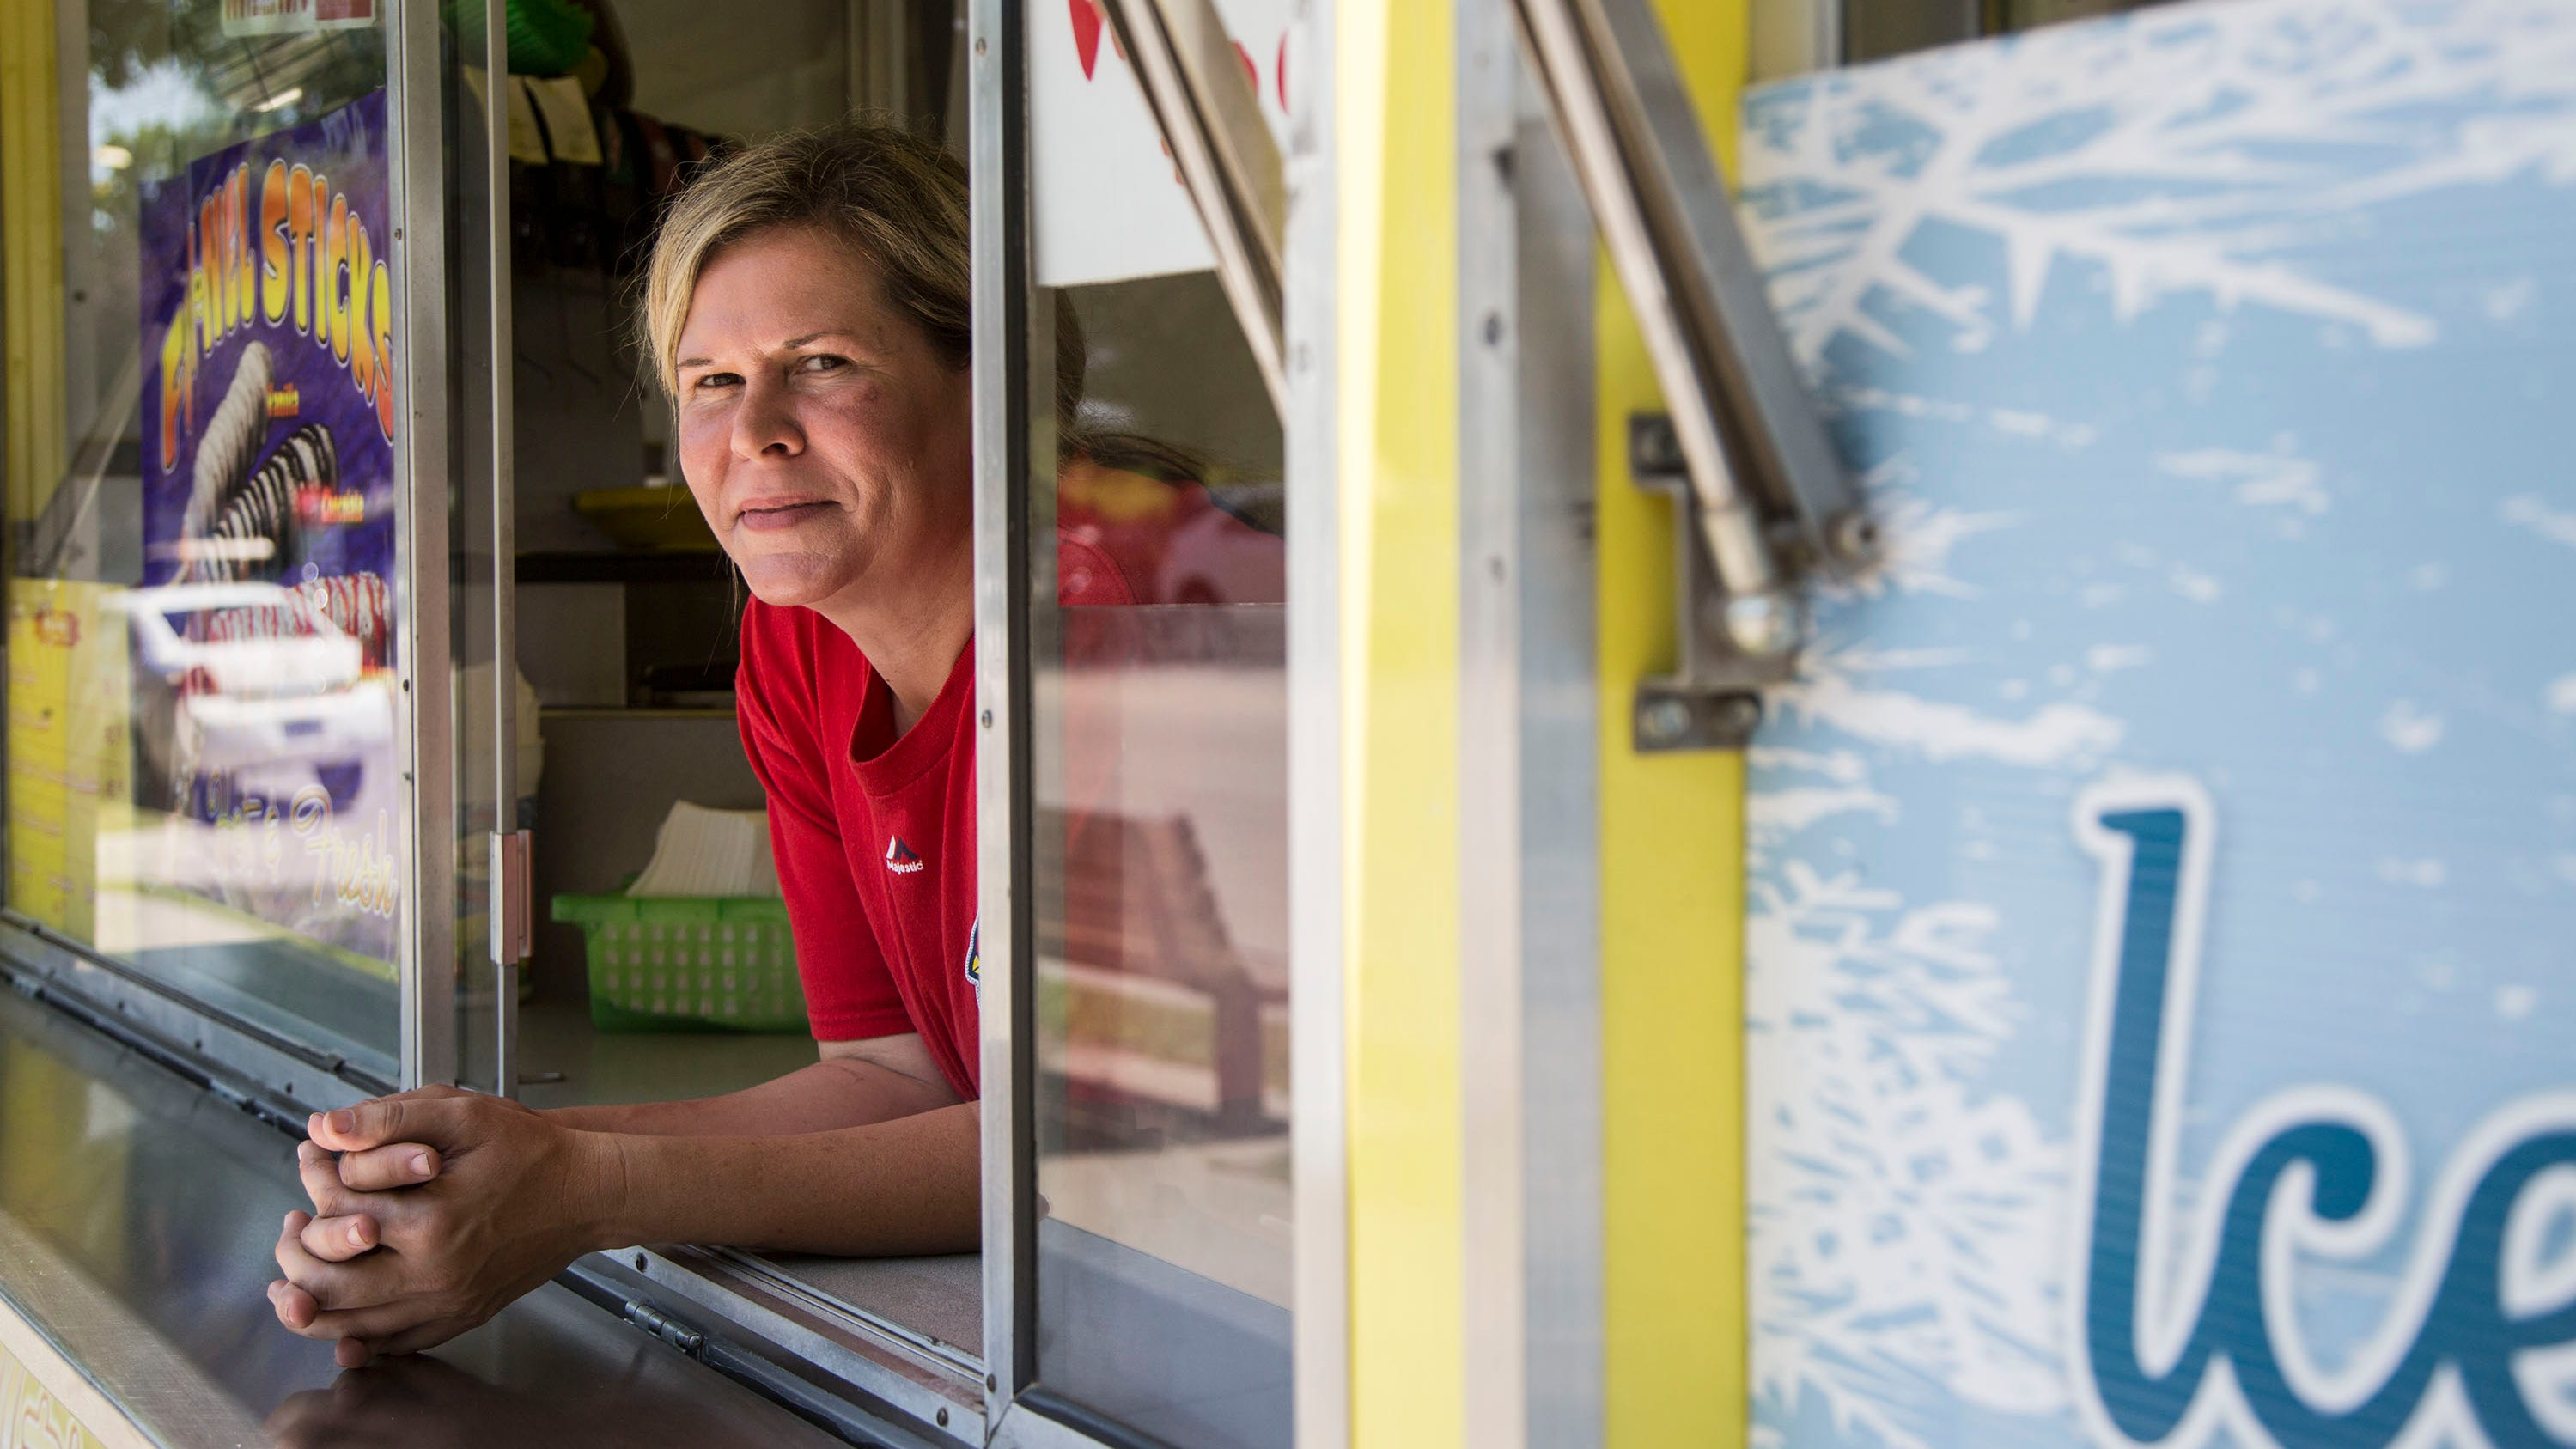 Murder at the State Fair: Victims' daughter returns to the fairgrounds to re-open a funnel cake stand 22 years after their deaths